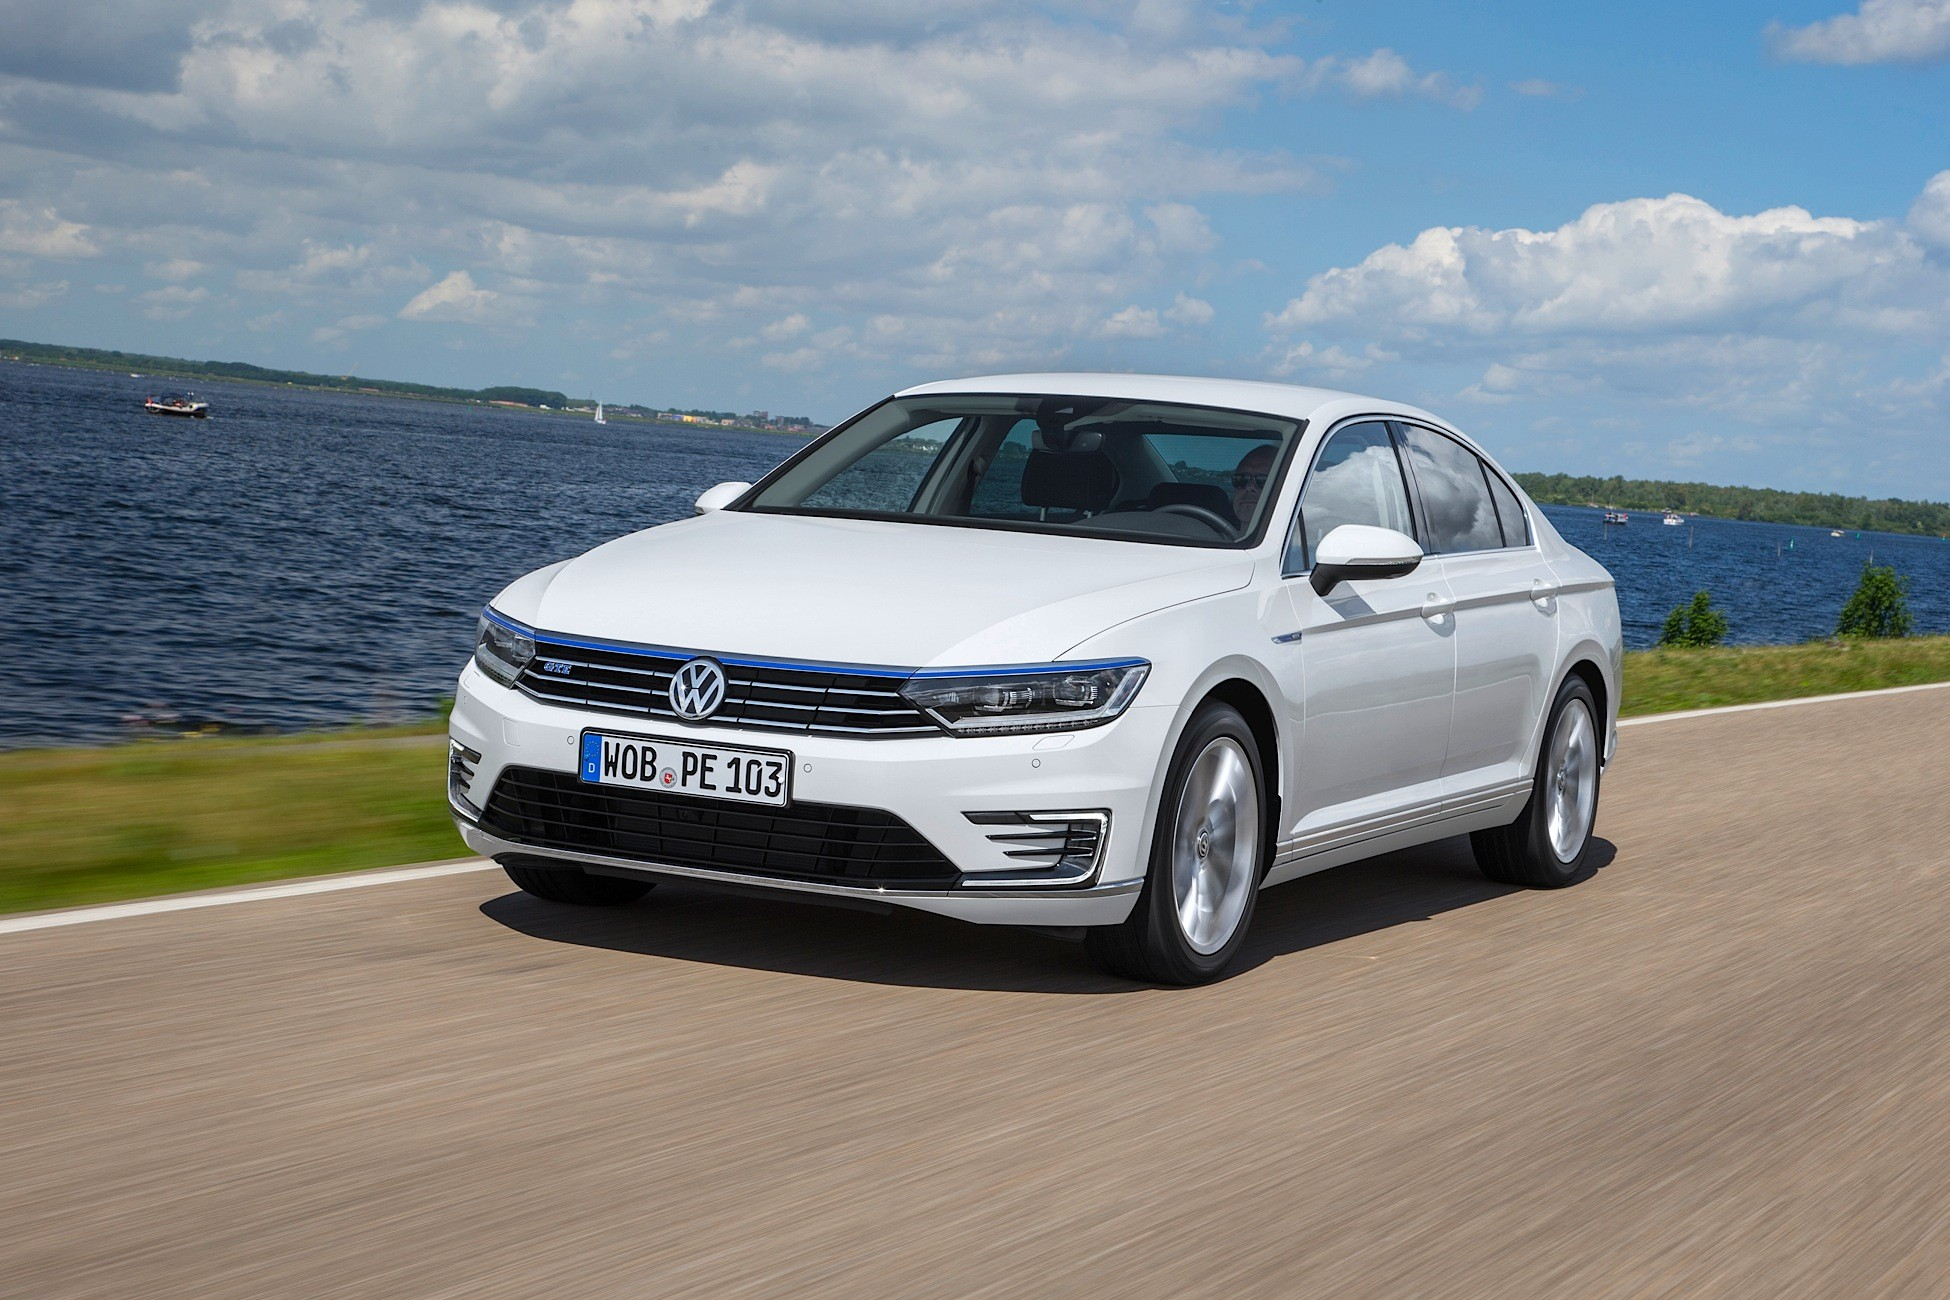 volkswagen passat gte specs 2015 2016 2017 2018 autoevolution. Black Bedroom Furniture Sets. Home Design Ideas